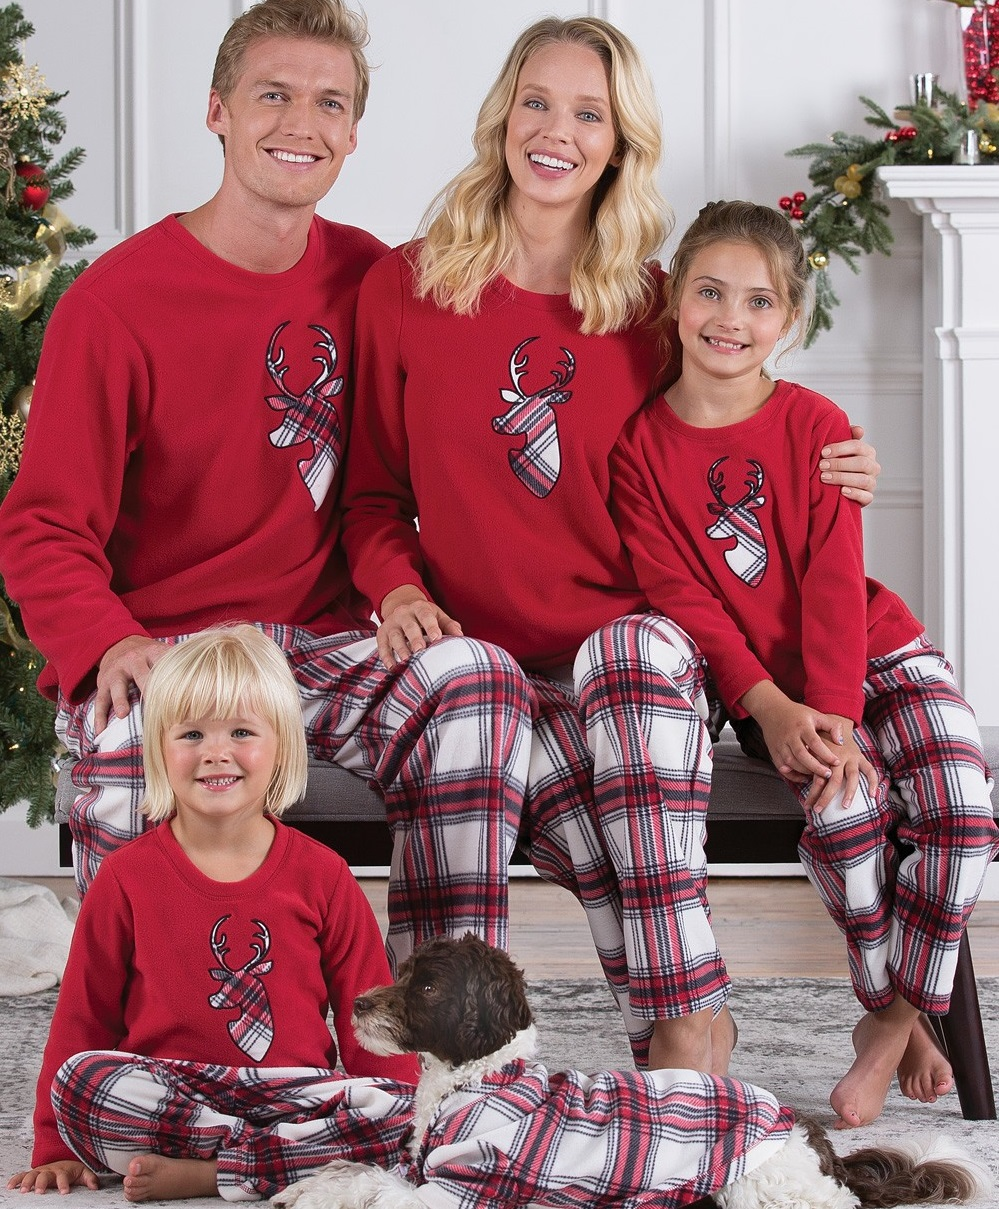 Plaid Sleepwear Christmas Deer Family Pajamas Sets Dad Mom Kids Nightwear Christmas Pajamas Family Matching Clothes Outfits Look